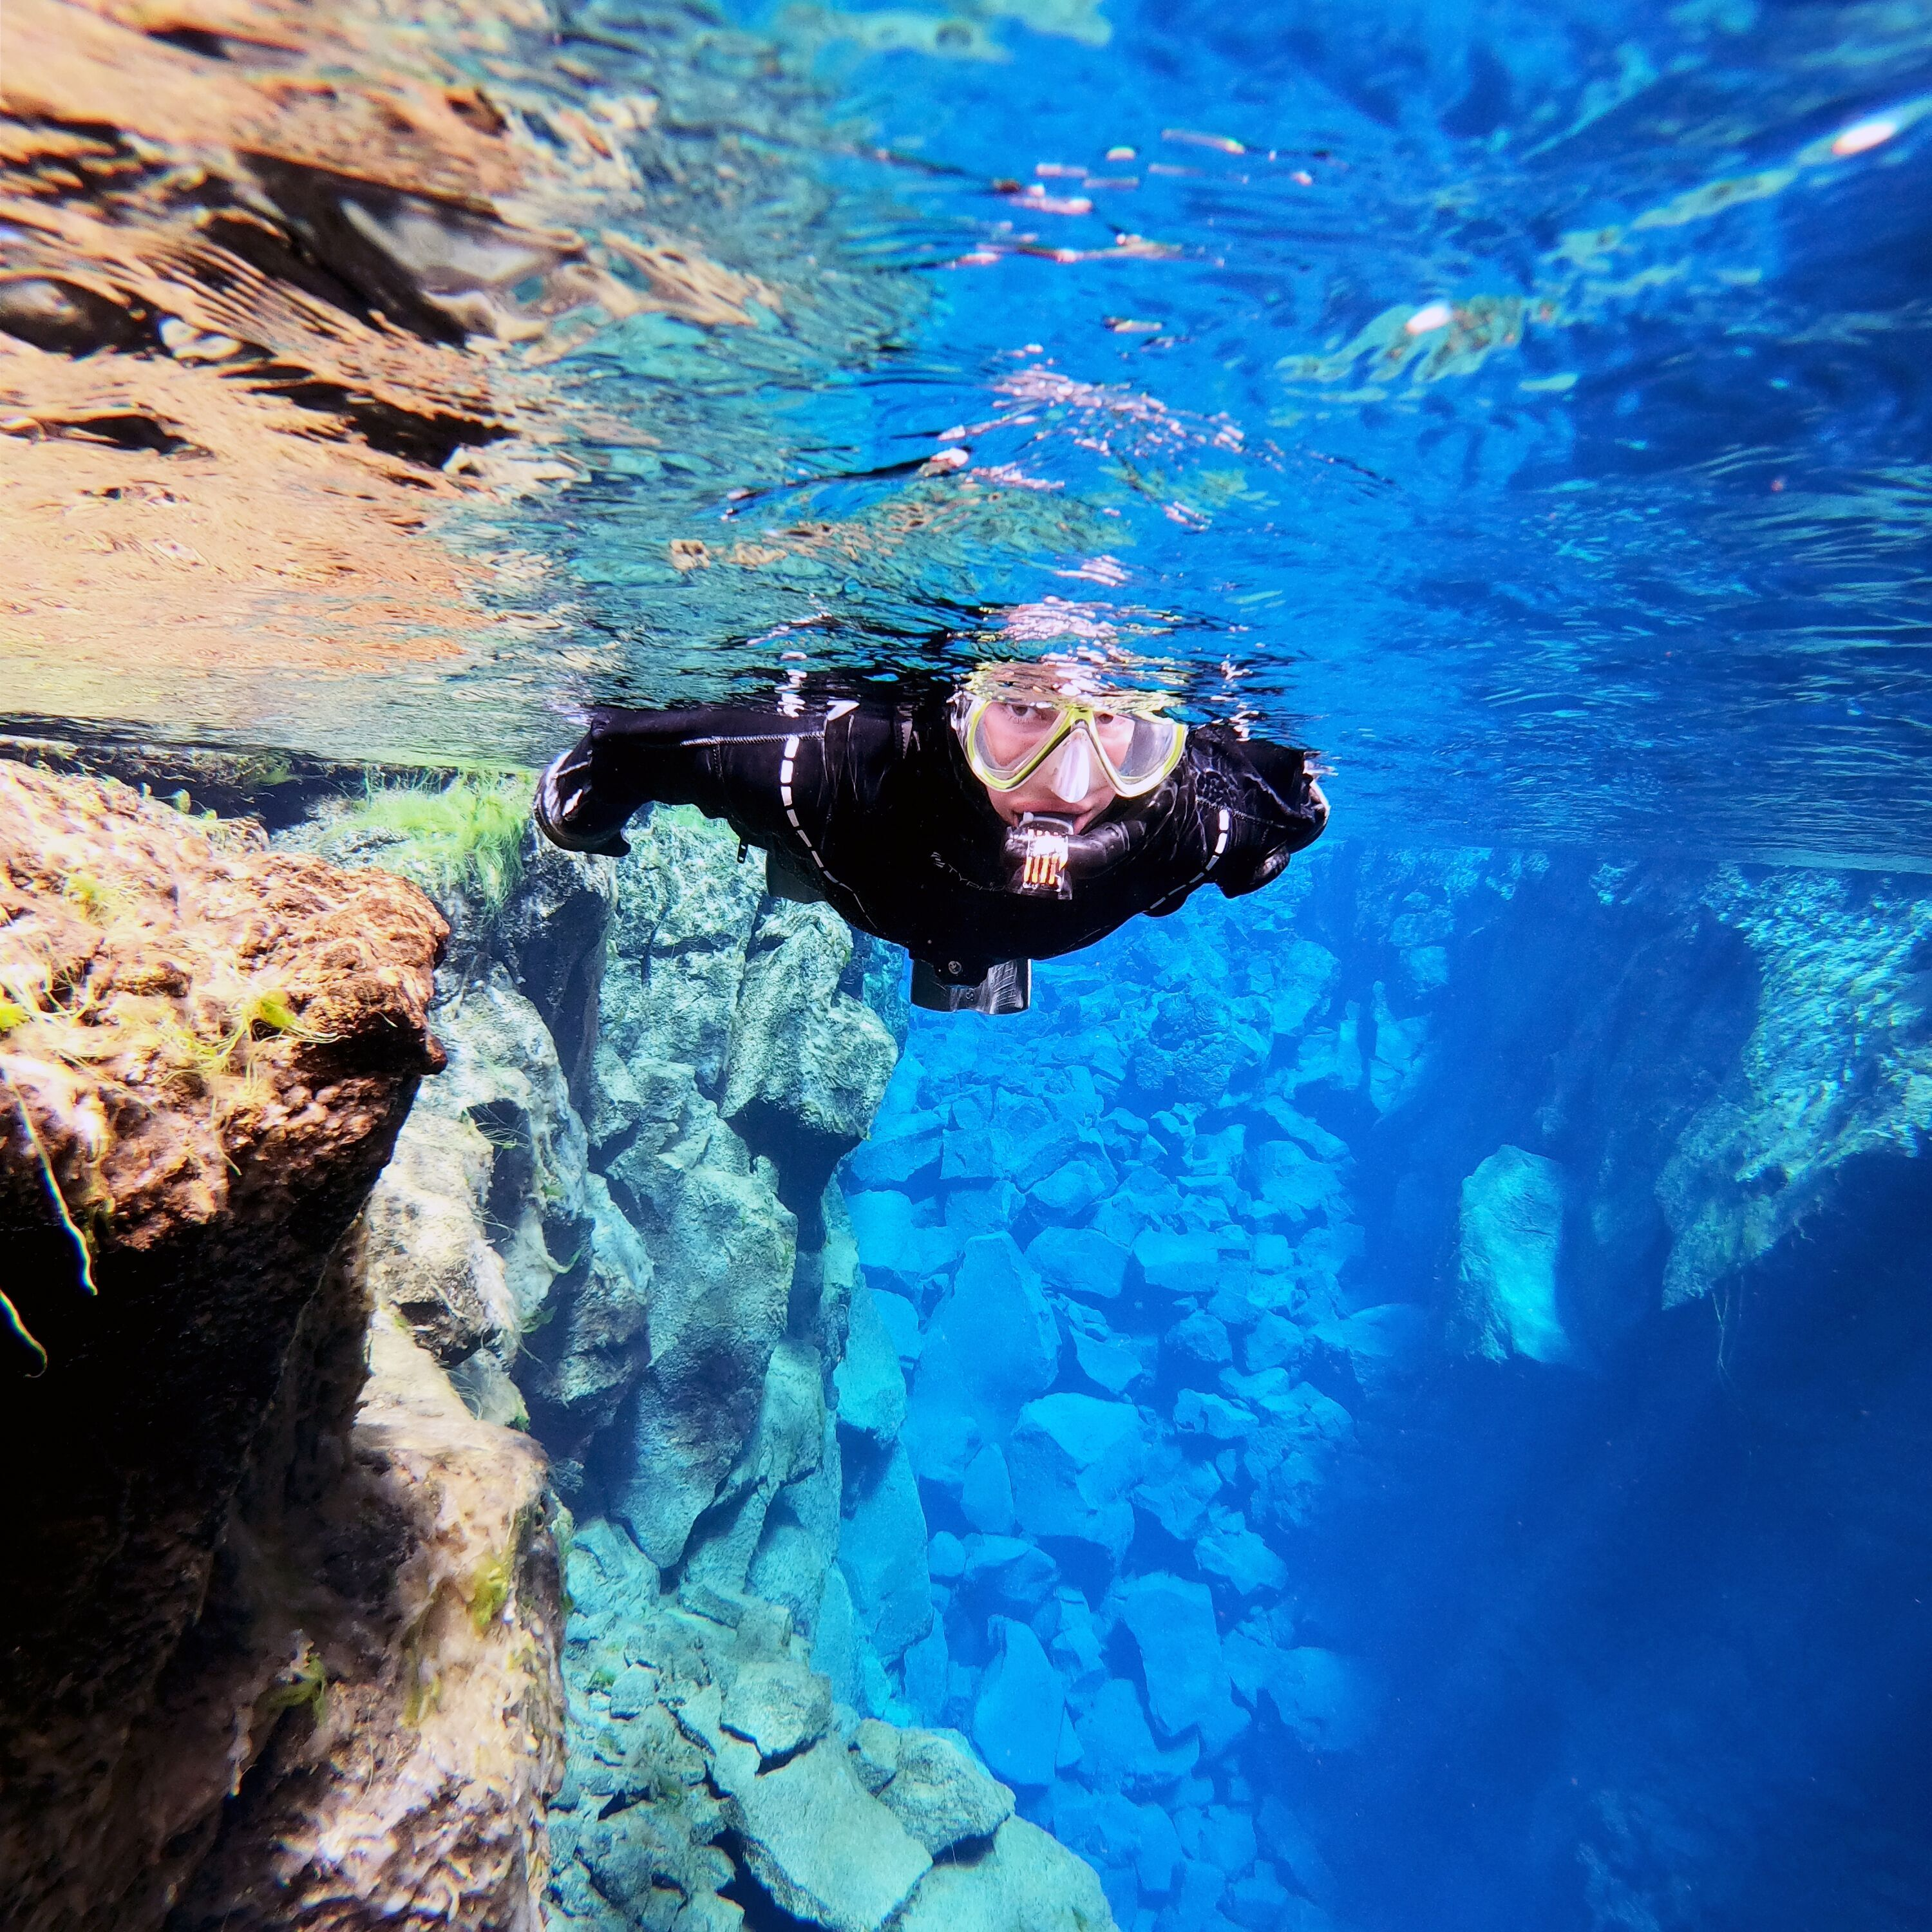 Immerse yourself into a magical underwater world.